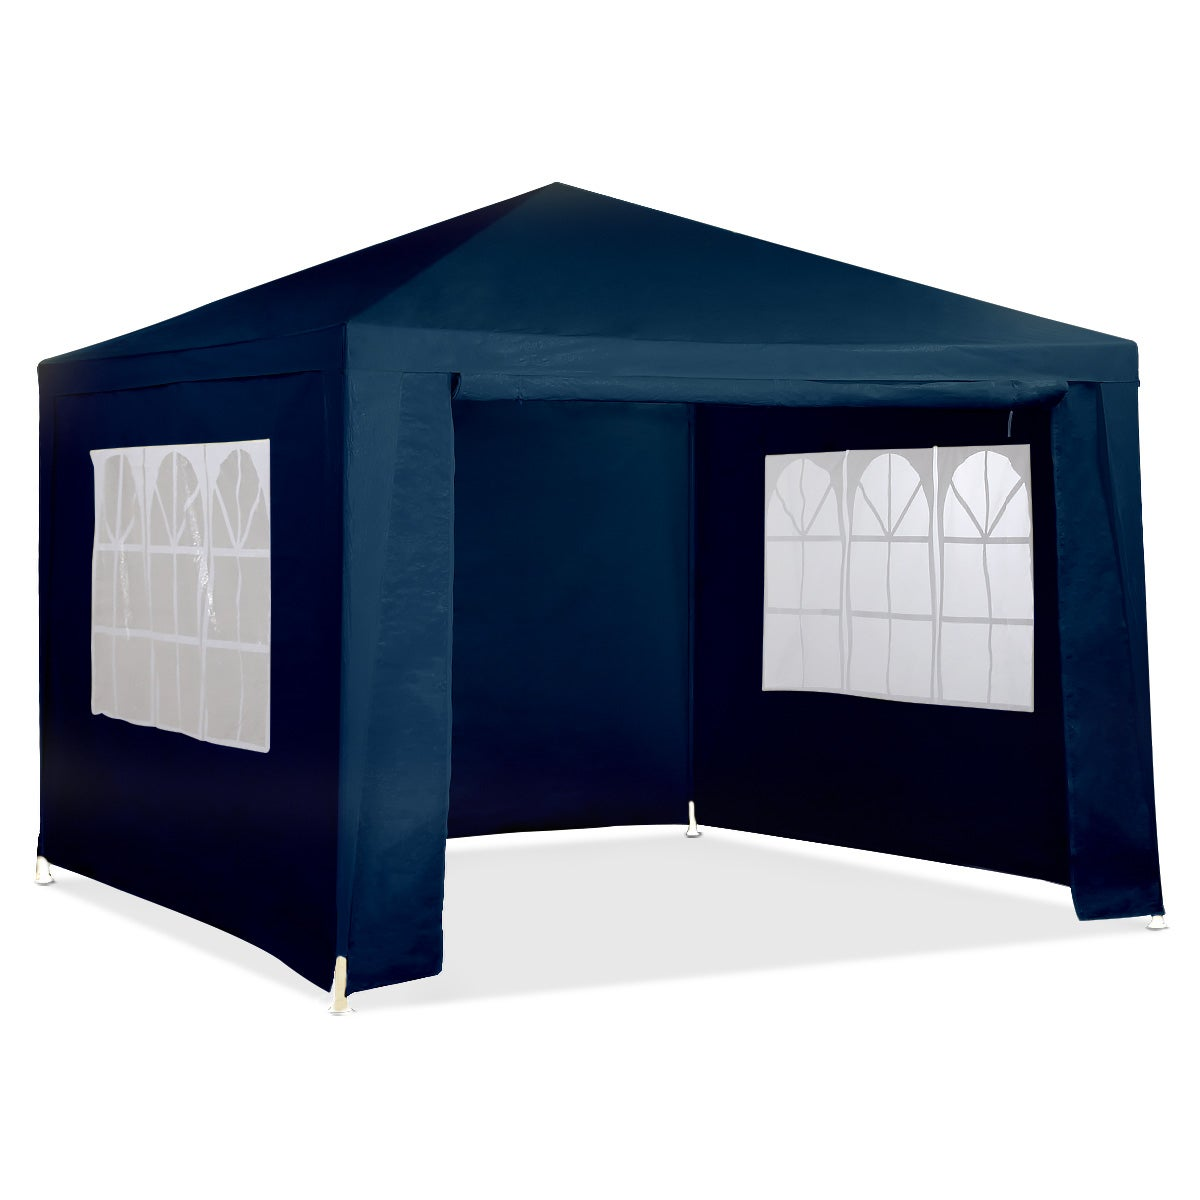 New 3x3 Gazebo Party Tent Event Marquee Awning Outdoor Pavilion Canopy 3x6 3x9m